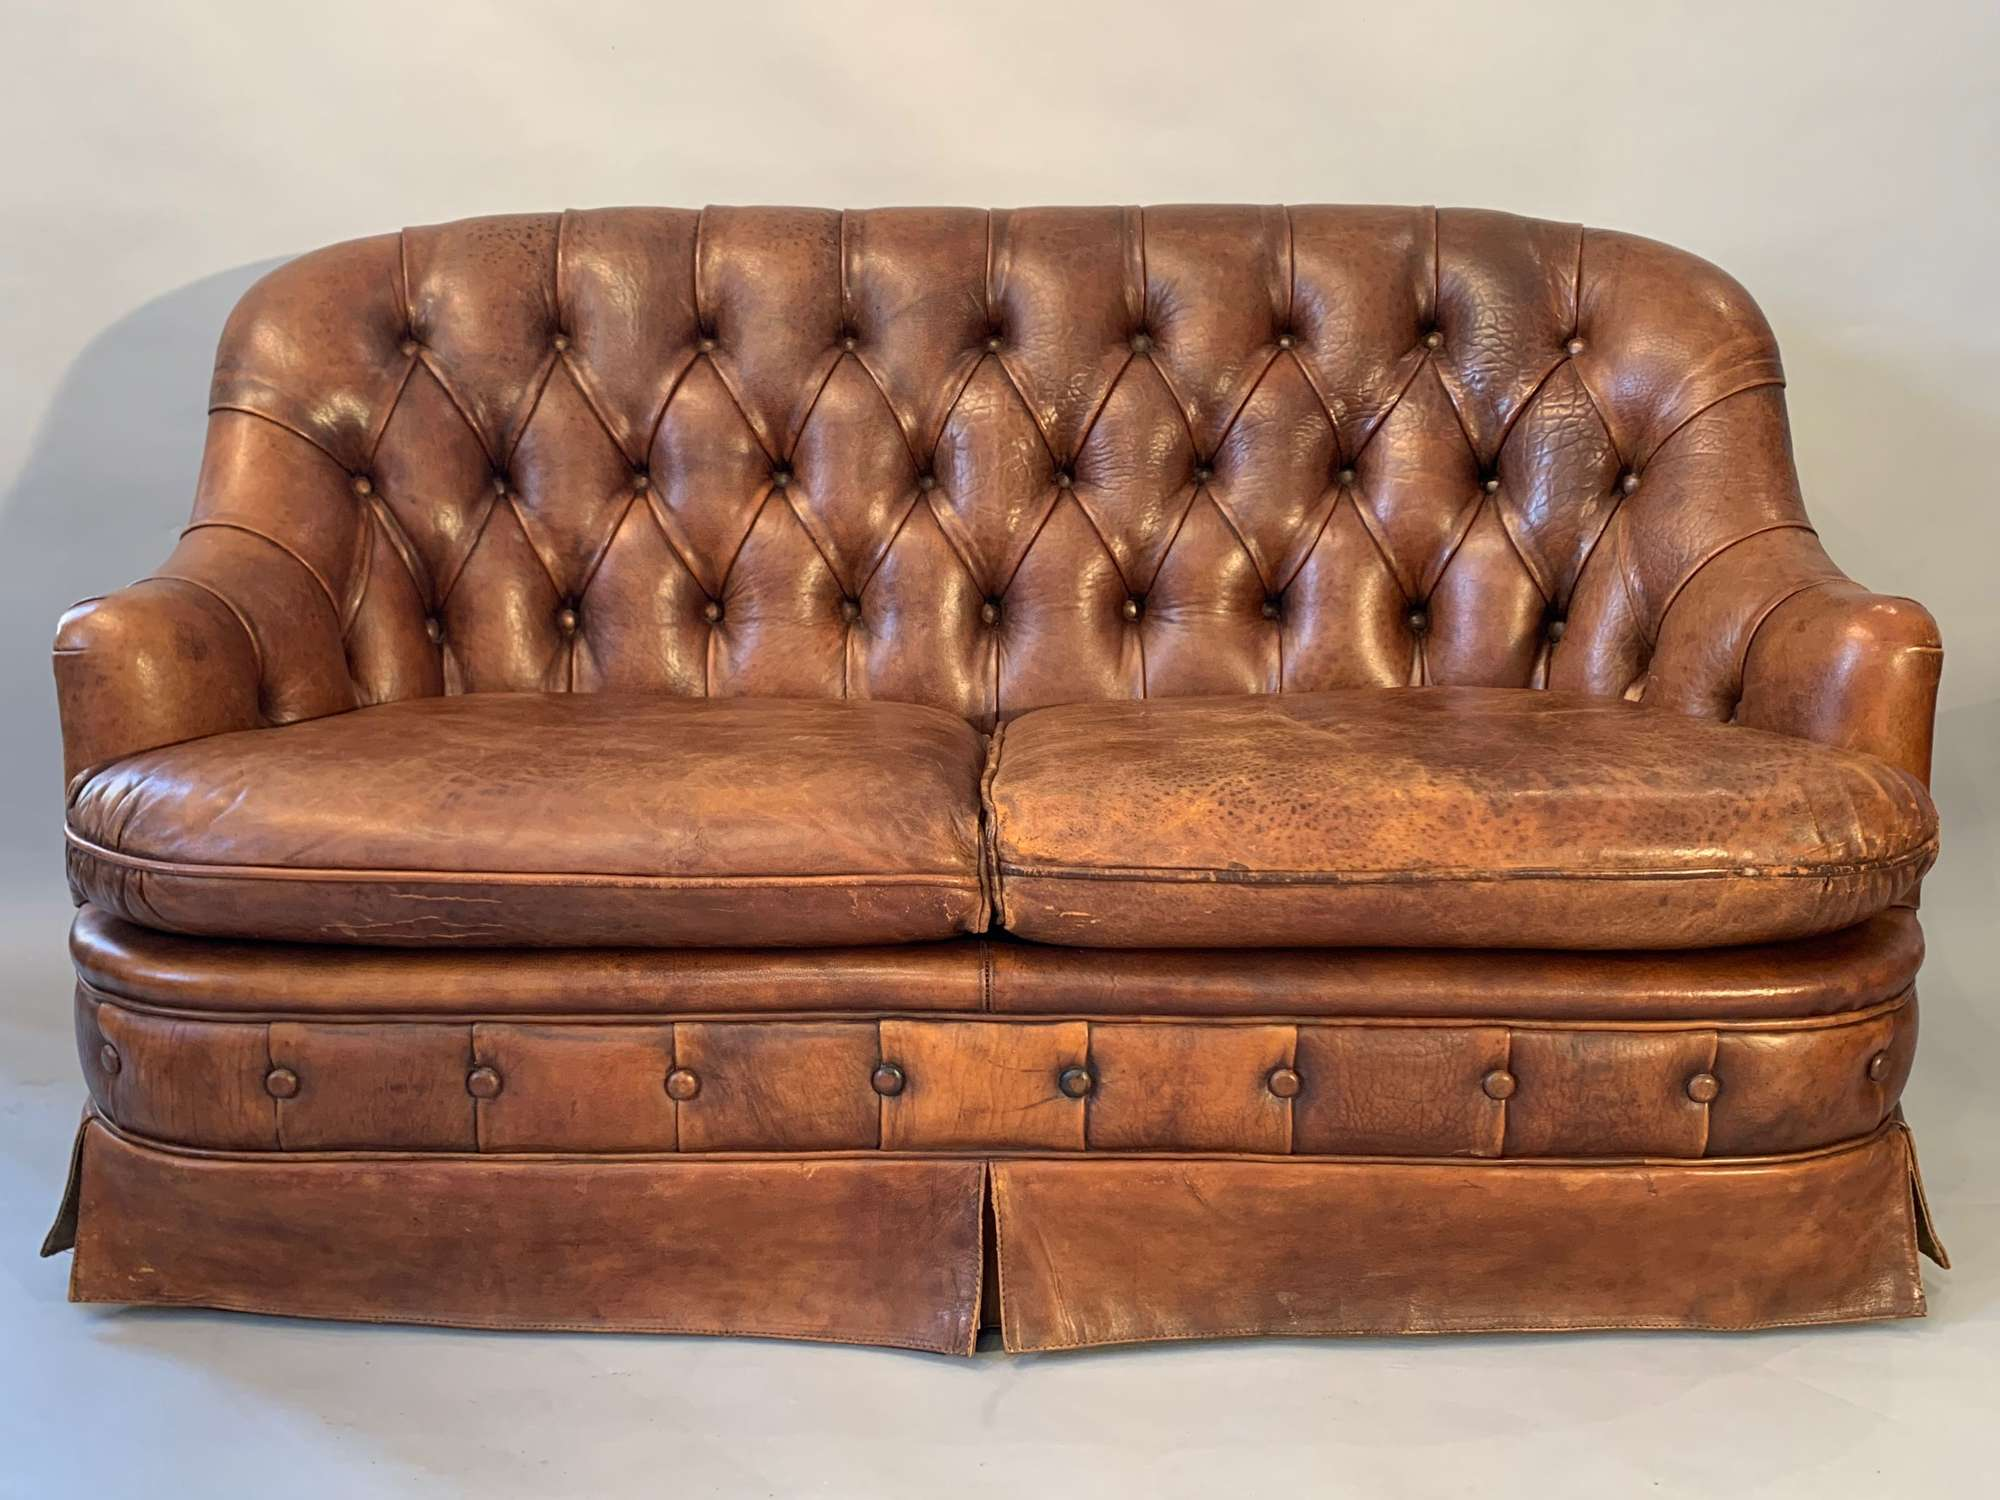 A buttoned tan leather two seat sofa